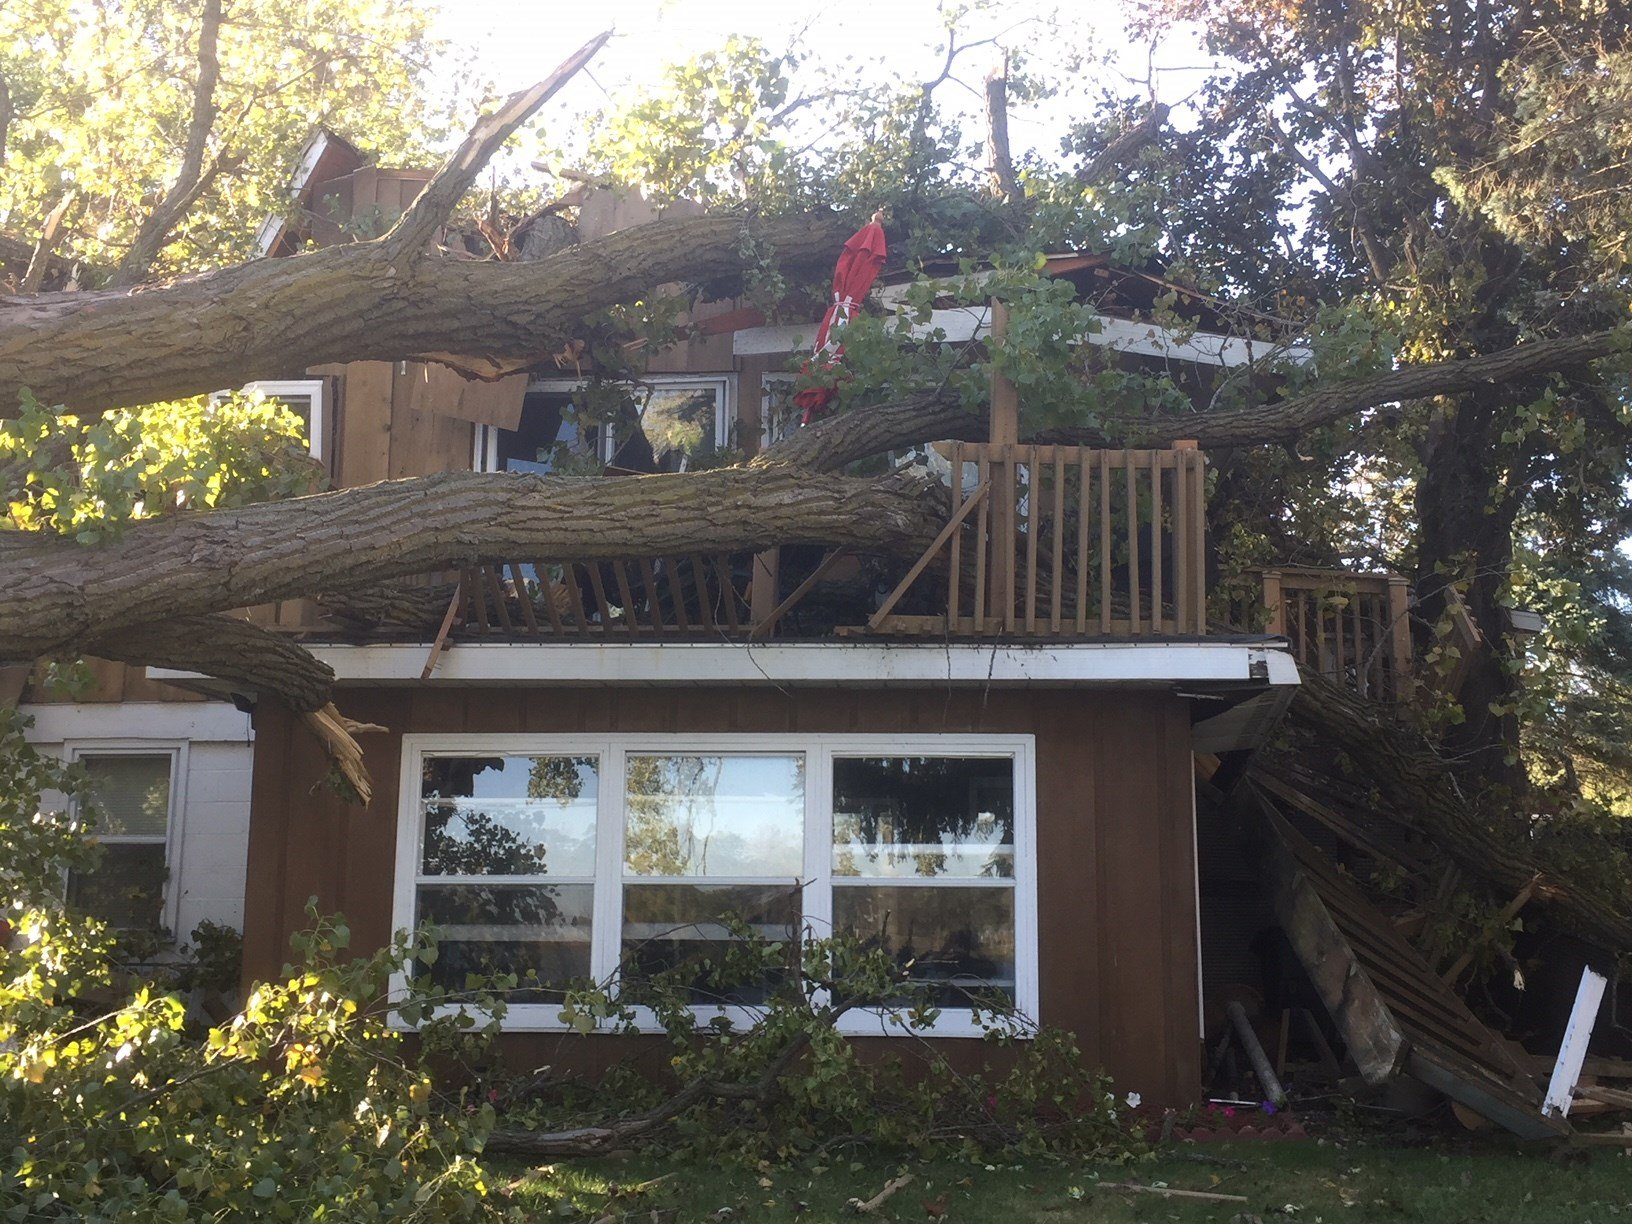 Strong winds causes tree to fall on house in Pardeeville - WKOW 27 ...